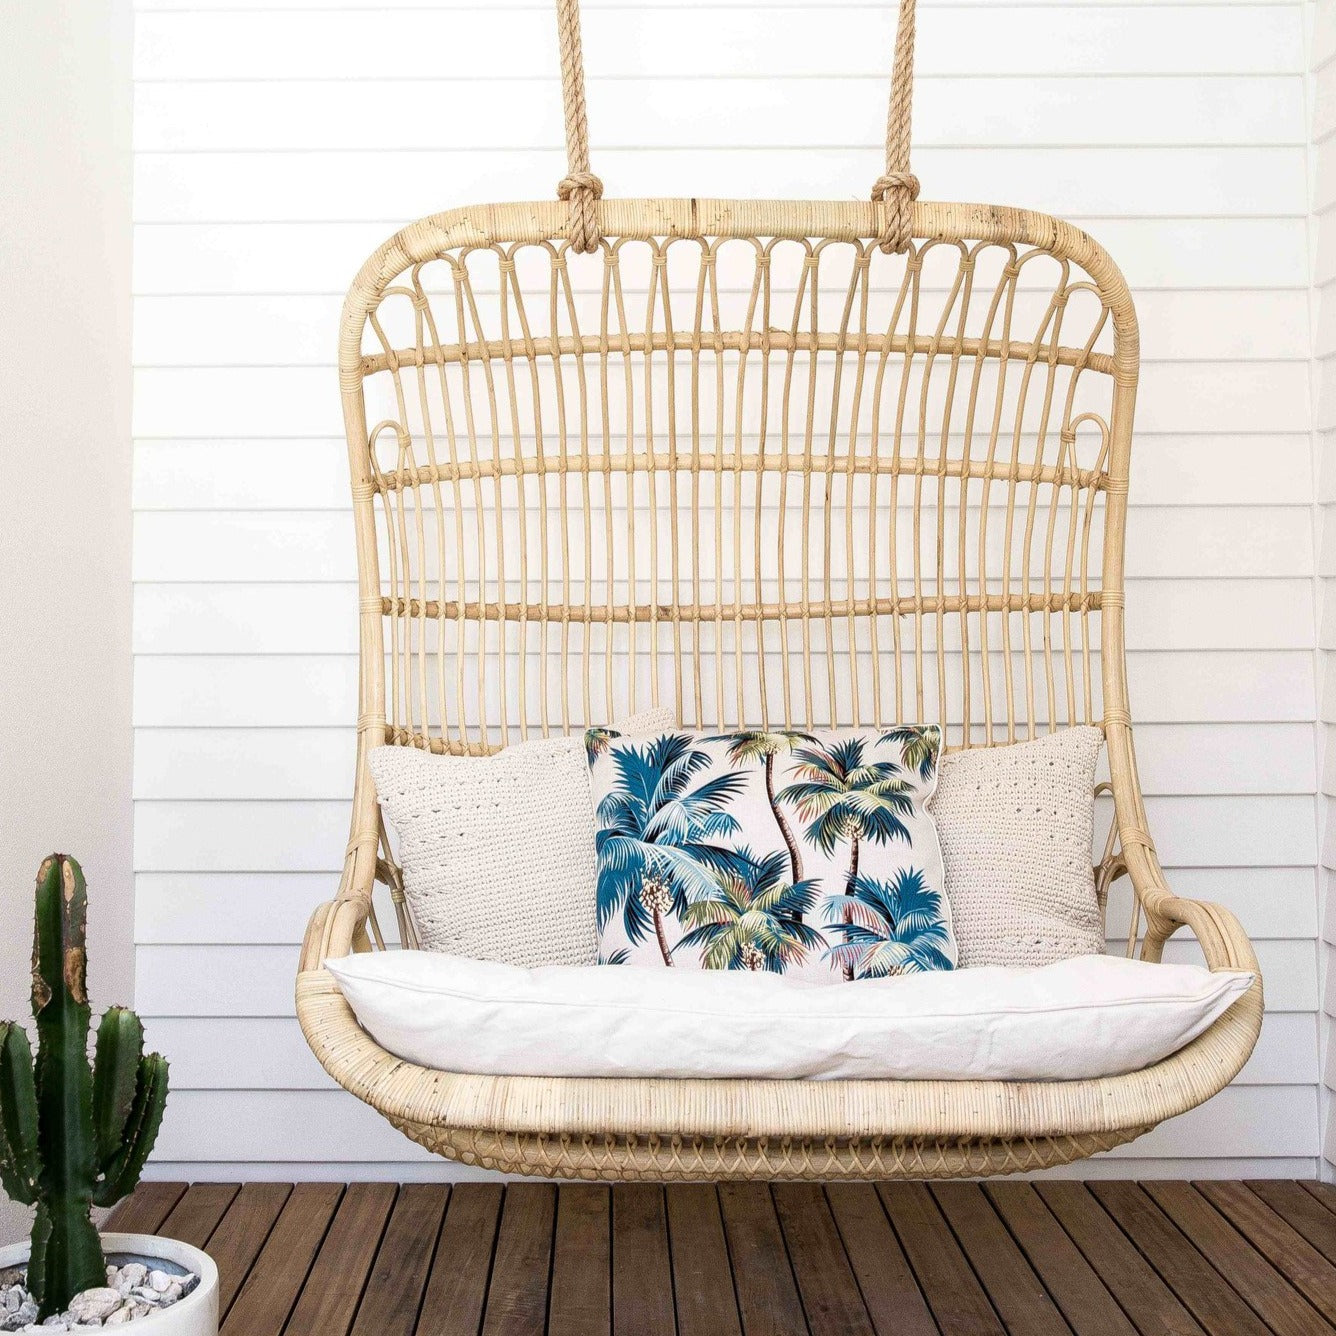 70 s Love Seat Pre Order for end Jan delivery